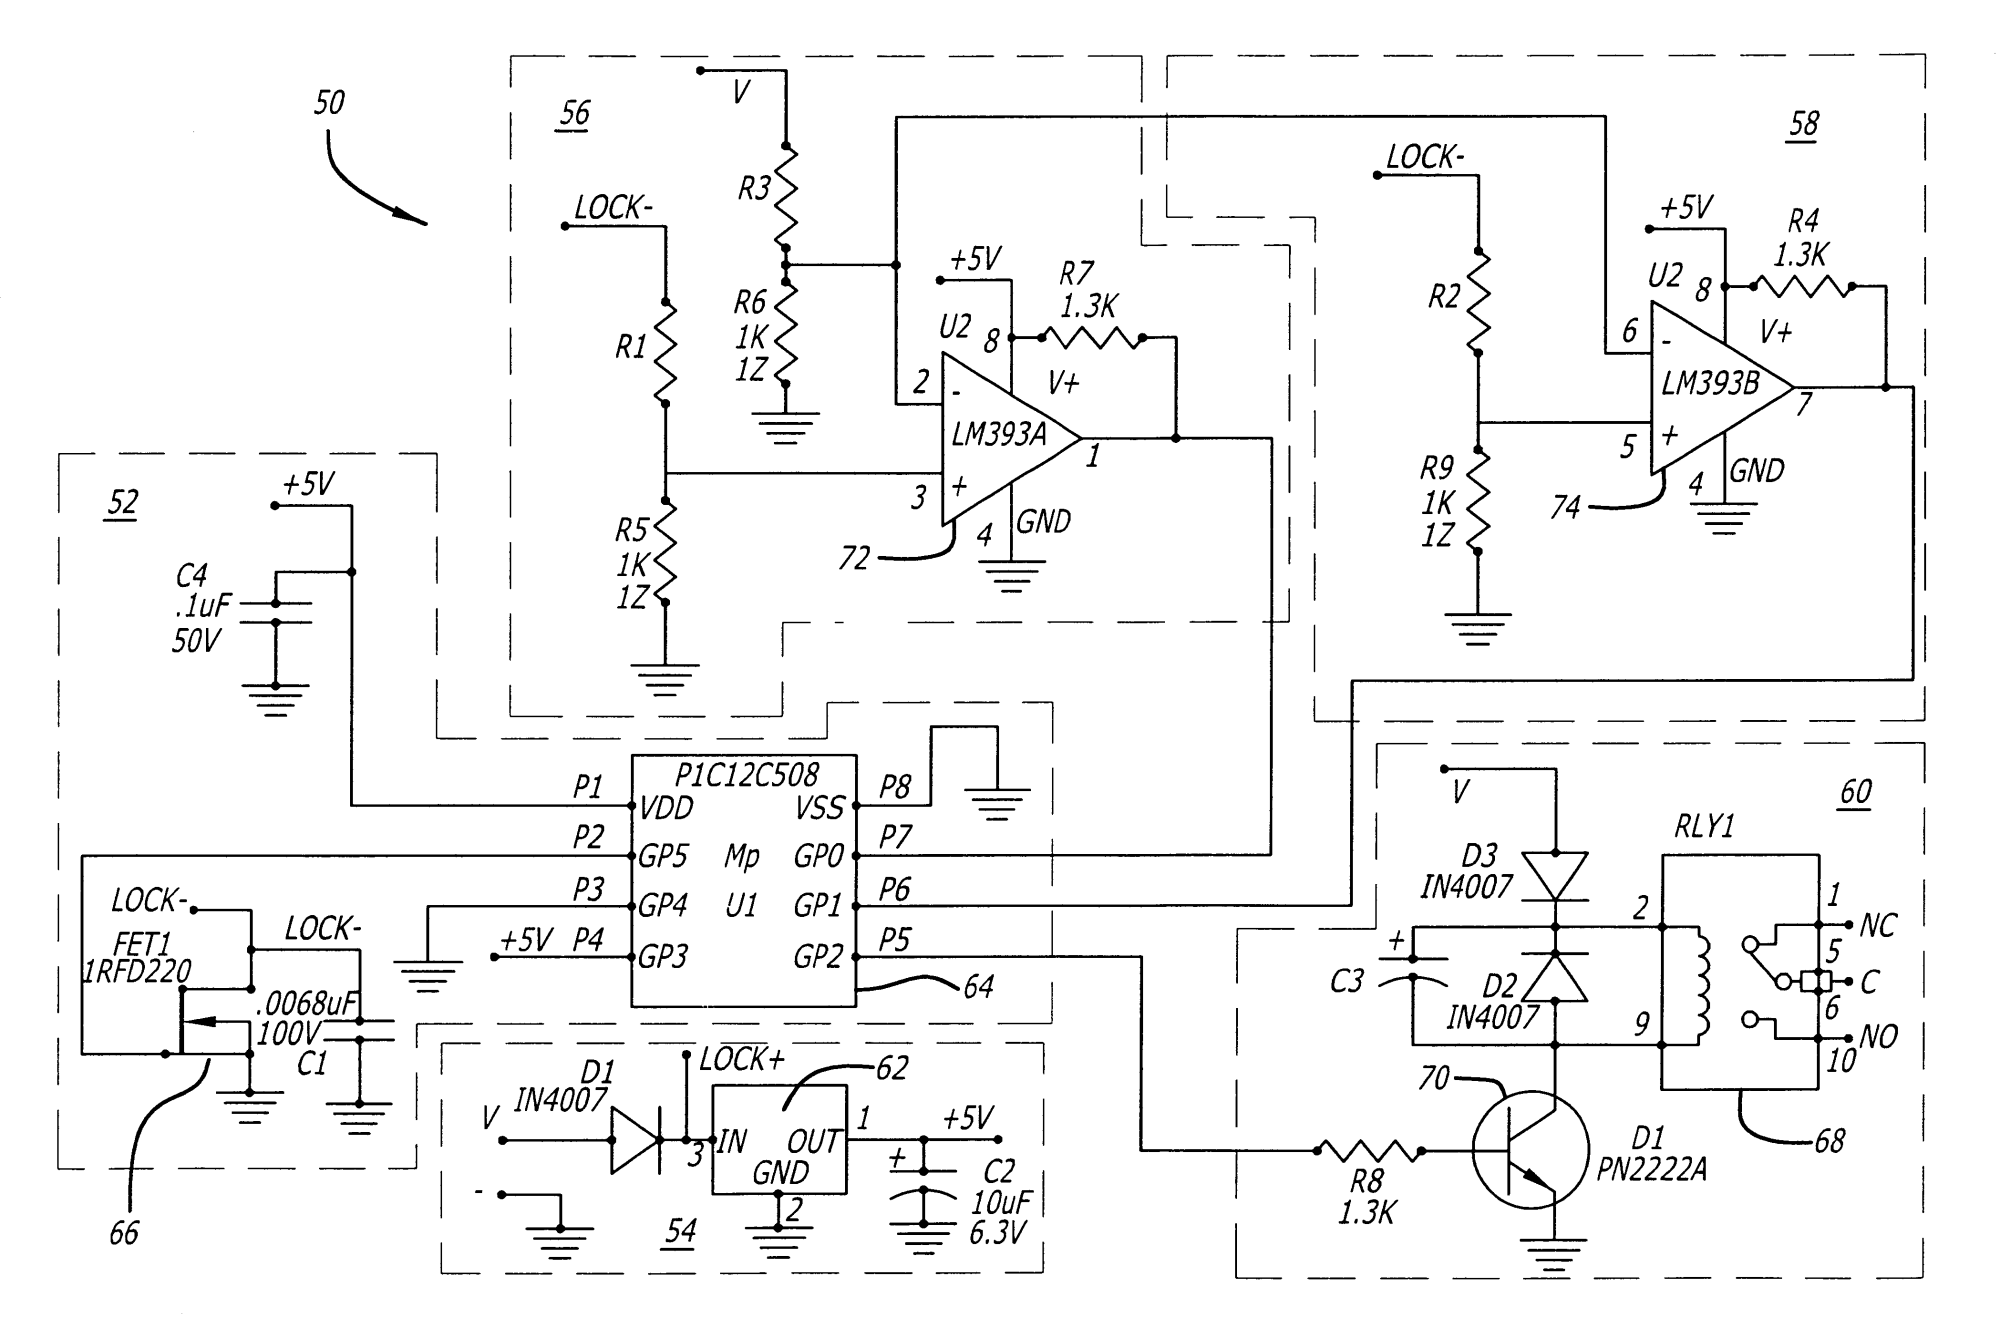 hight resolution of wiring diagram for honda pport oil filter for honda wiring securitron door control securitron m32 maglock